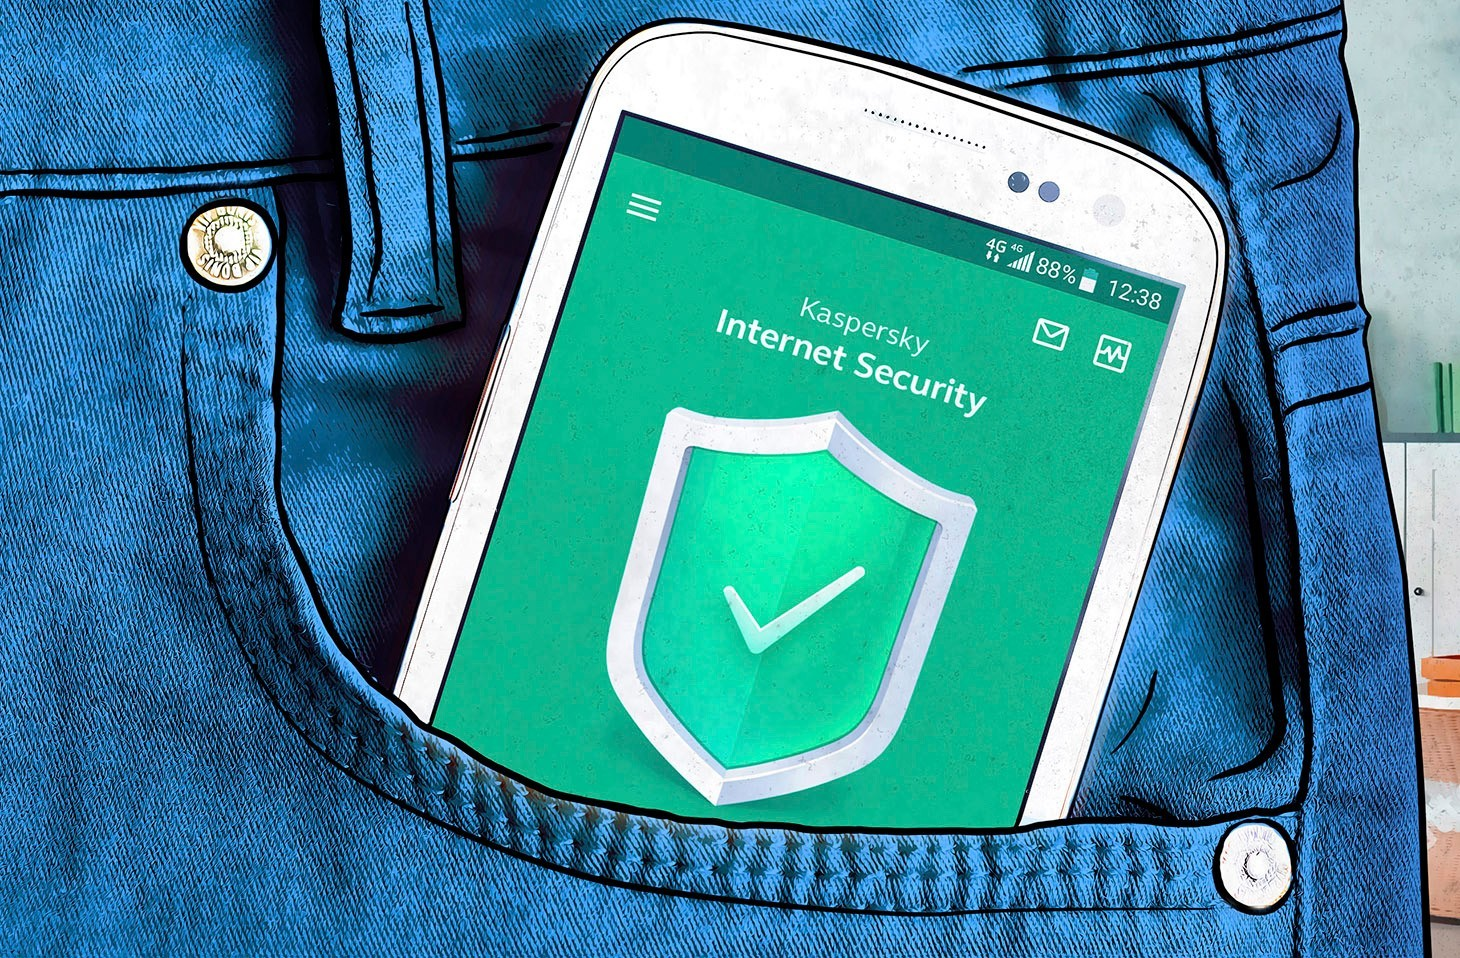 The difference between the paid and free versions of Kaspersky Internet Security for Android